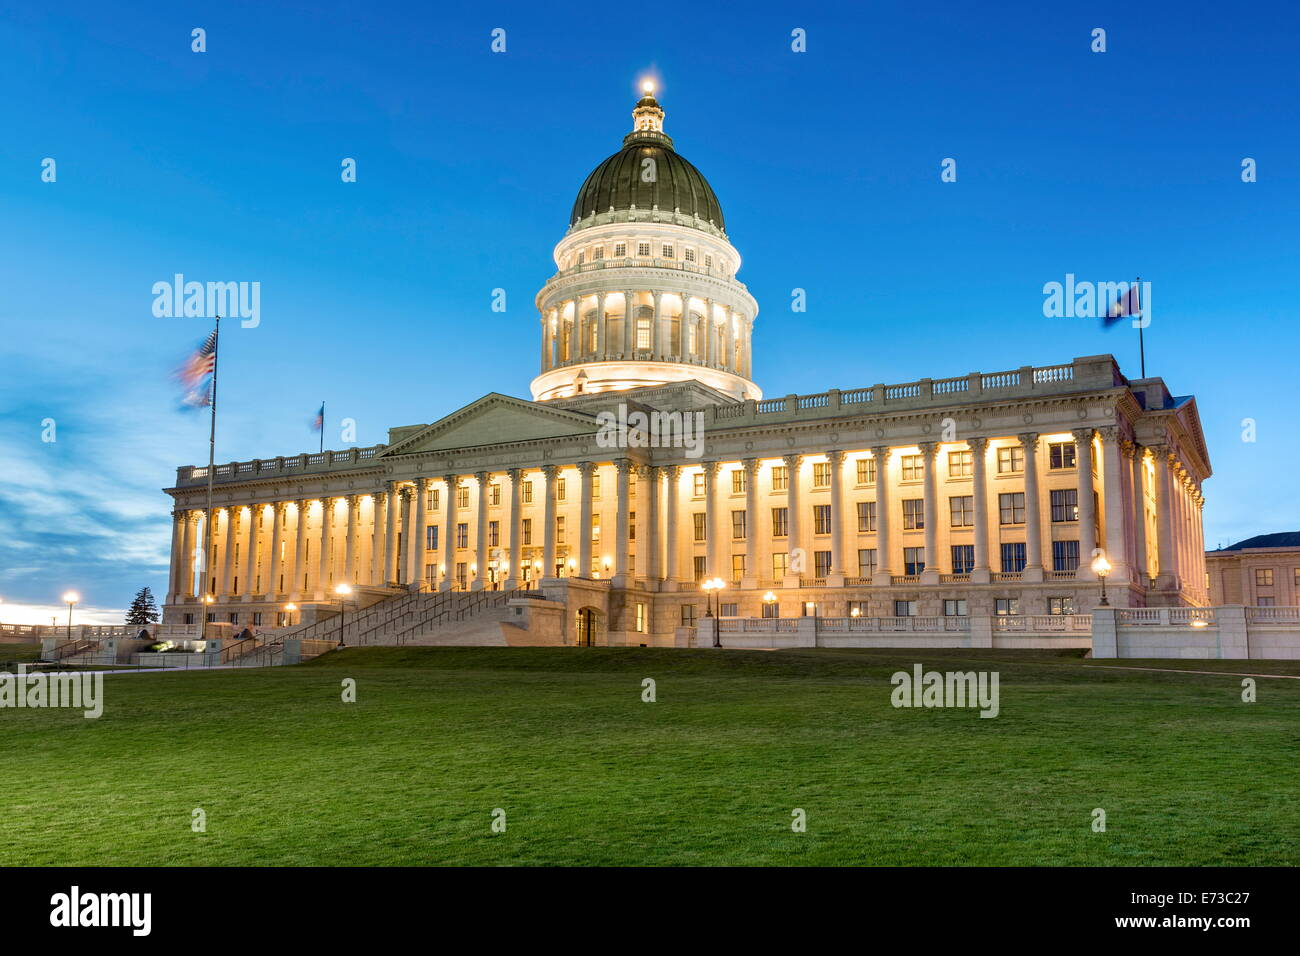 The Utah State Capitol Building at dusk, Salt Lake City, Utah, United States of America, North America - Stock Image